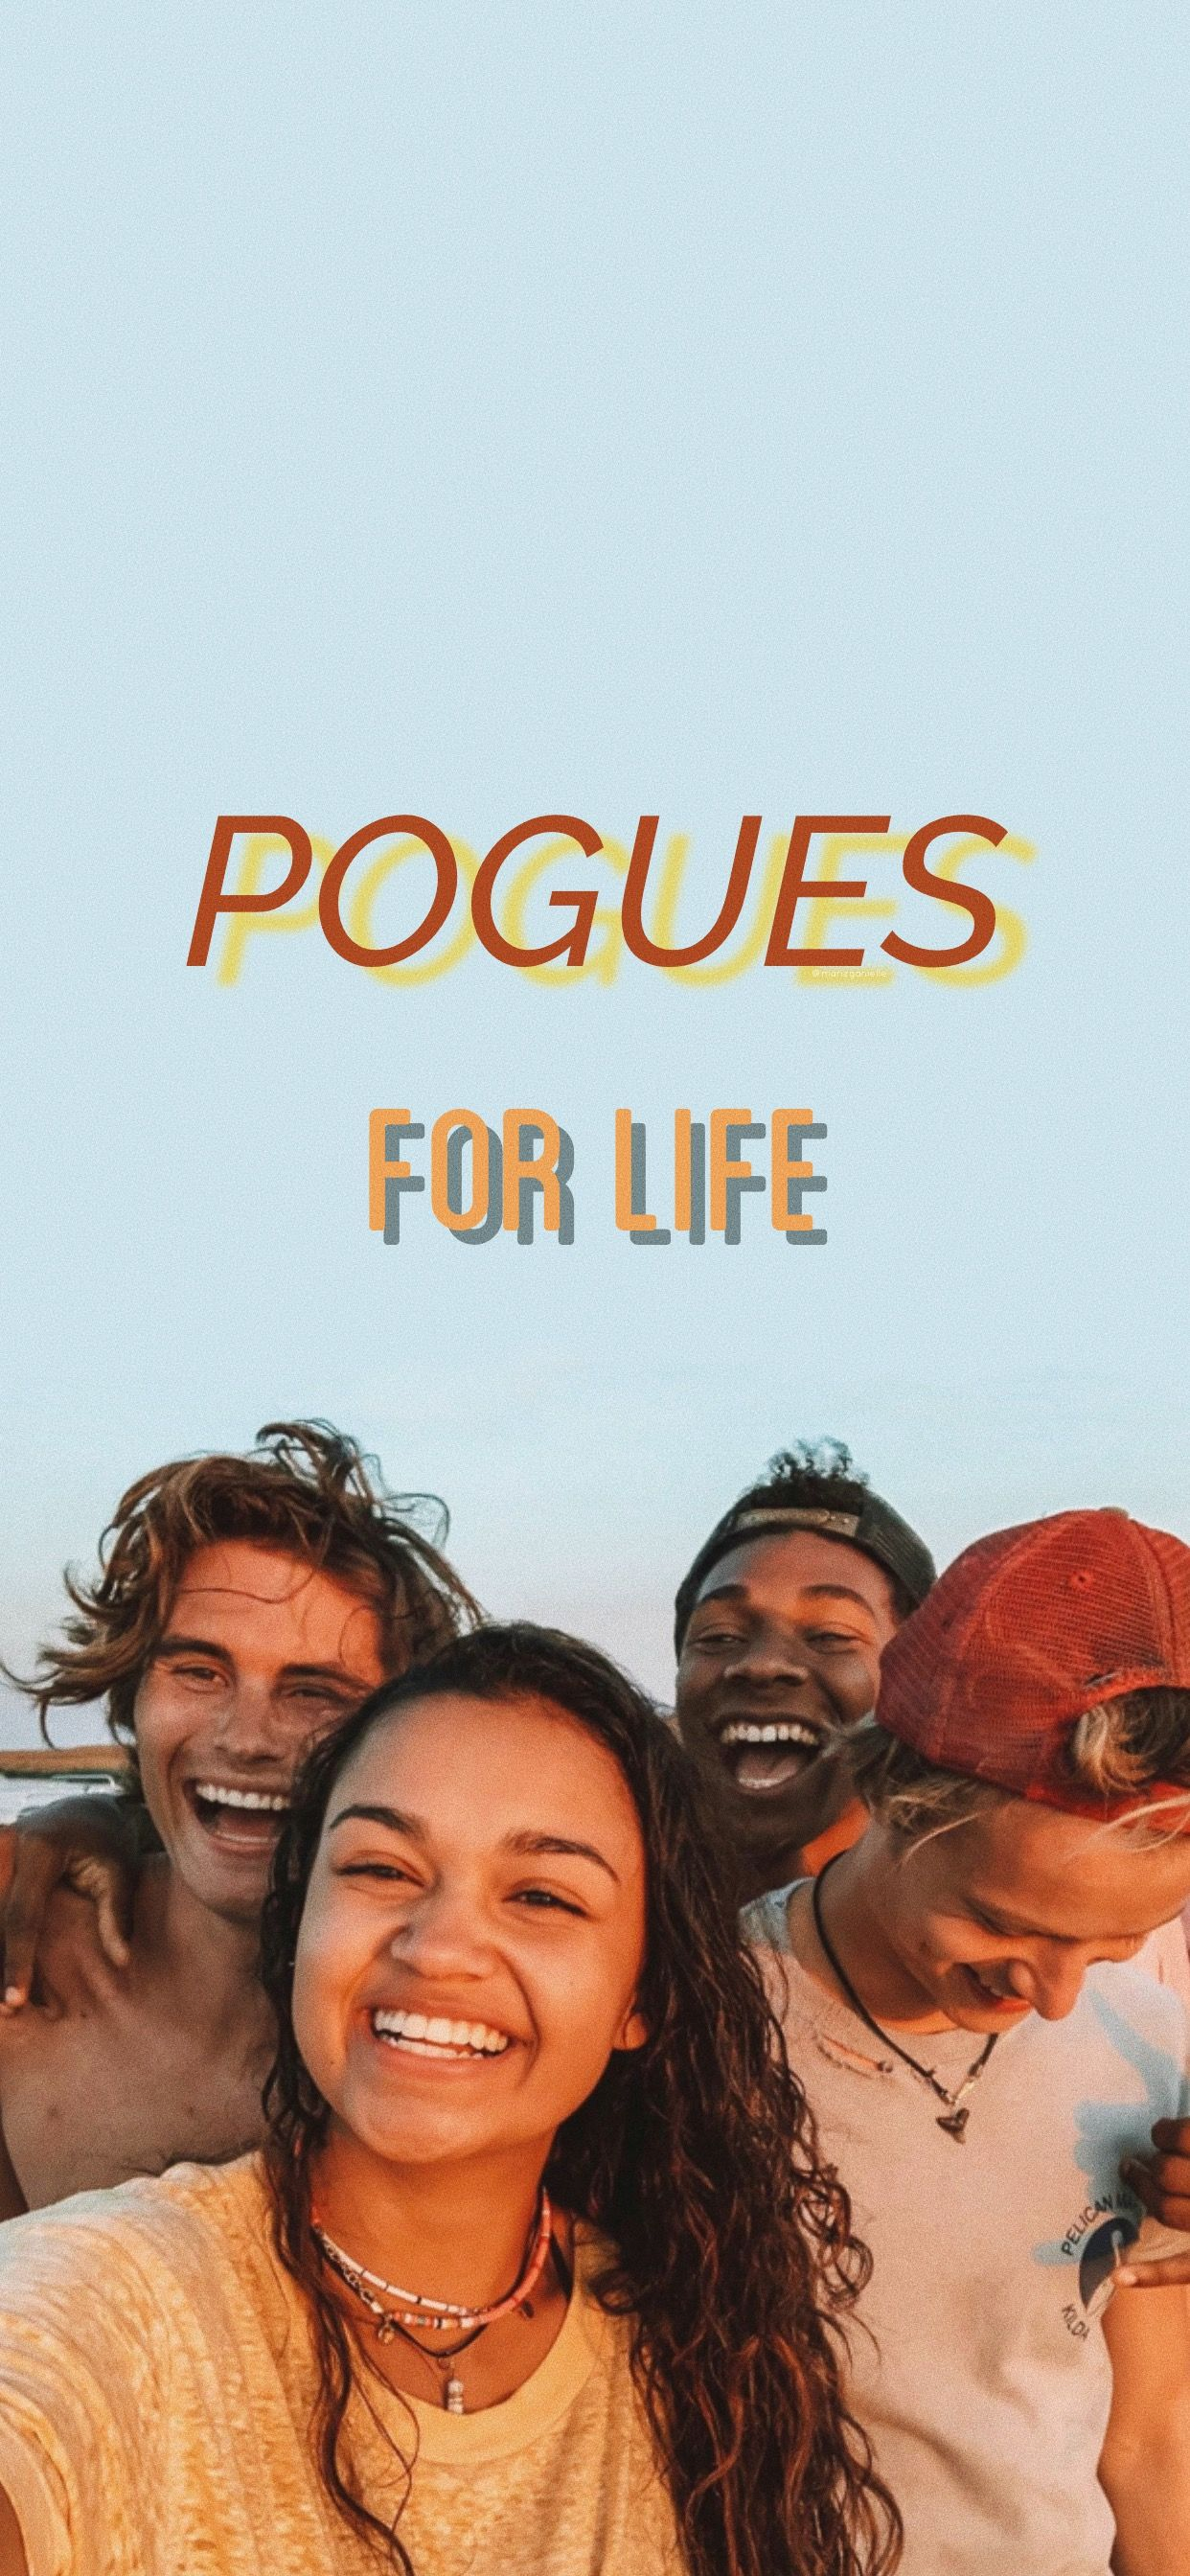 Outer Banks Wallpaper In 2020 Outer Banks Pankow The Pogues